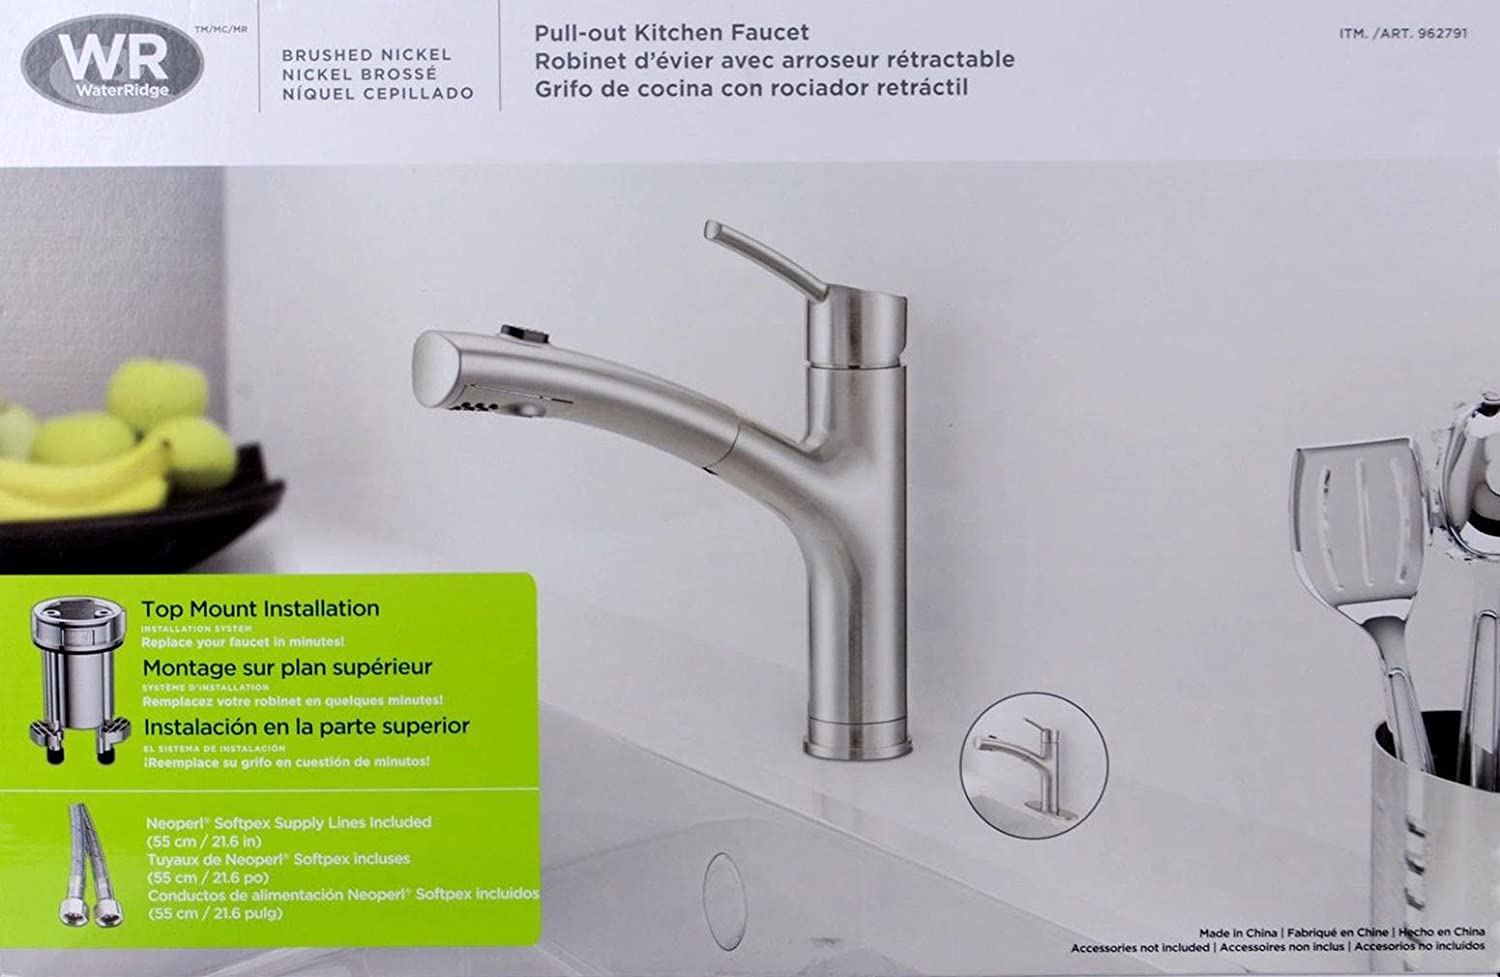 Water Ridge Brushed Nickel PullOut Kitchen Faucet FPB - Waterridge kitchen faucet